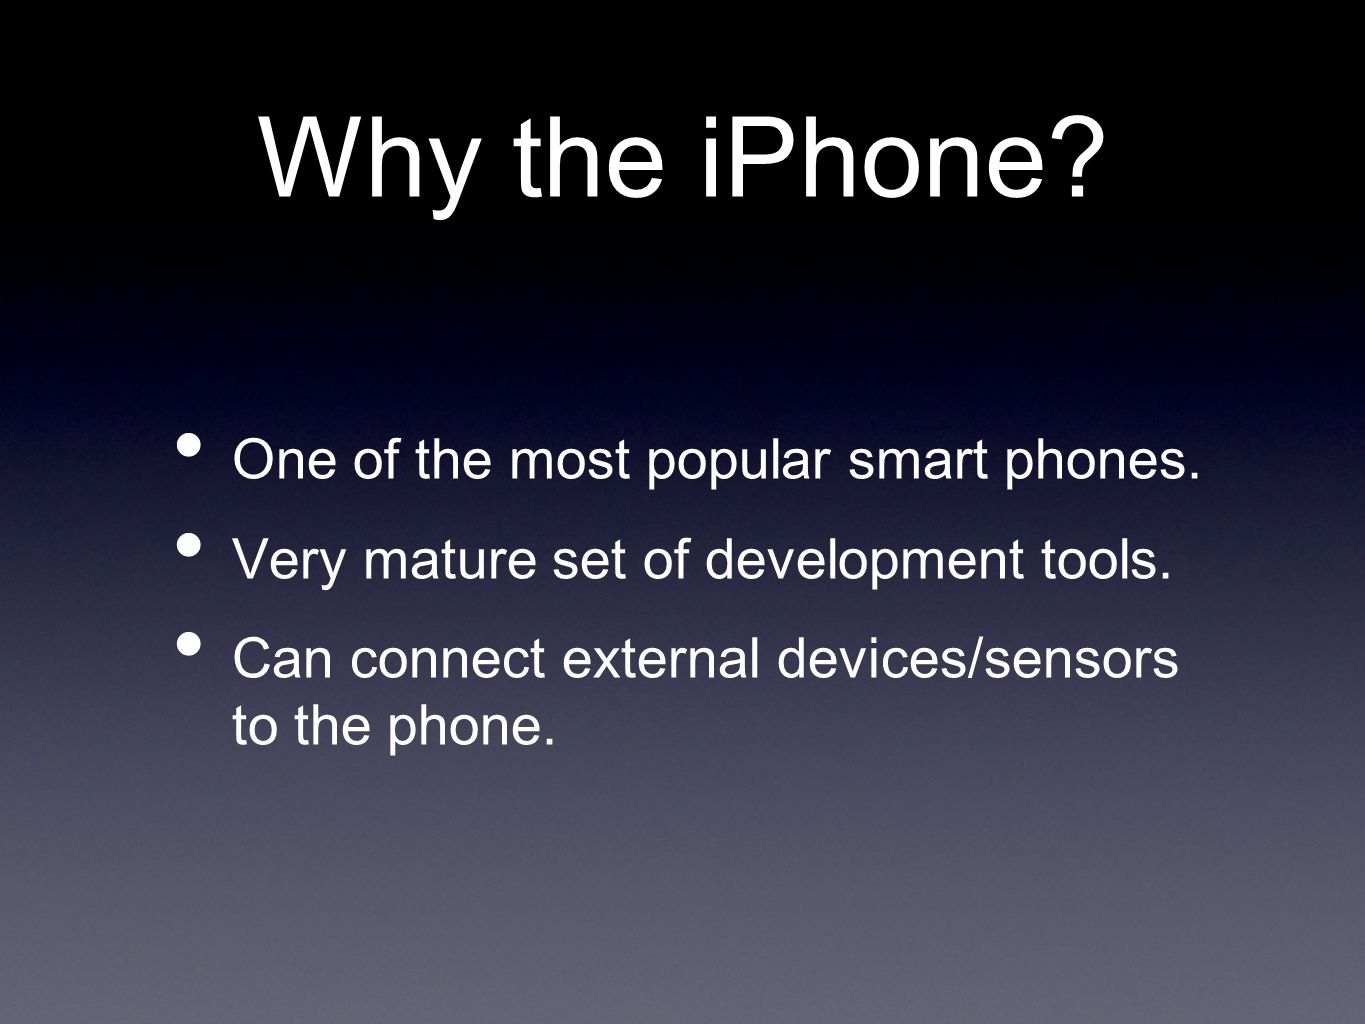 Why the iPhone? One of the most popular smart phones. Very mature set of development tools. Can connect external devices/sensors to the phone.